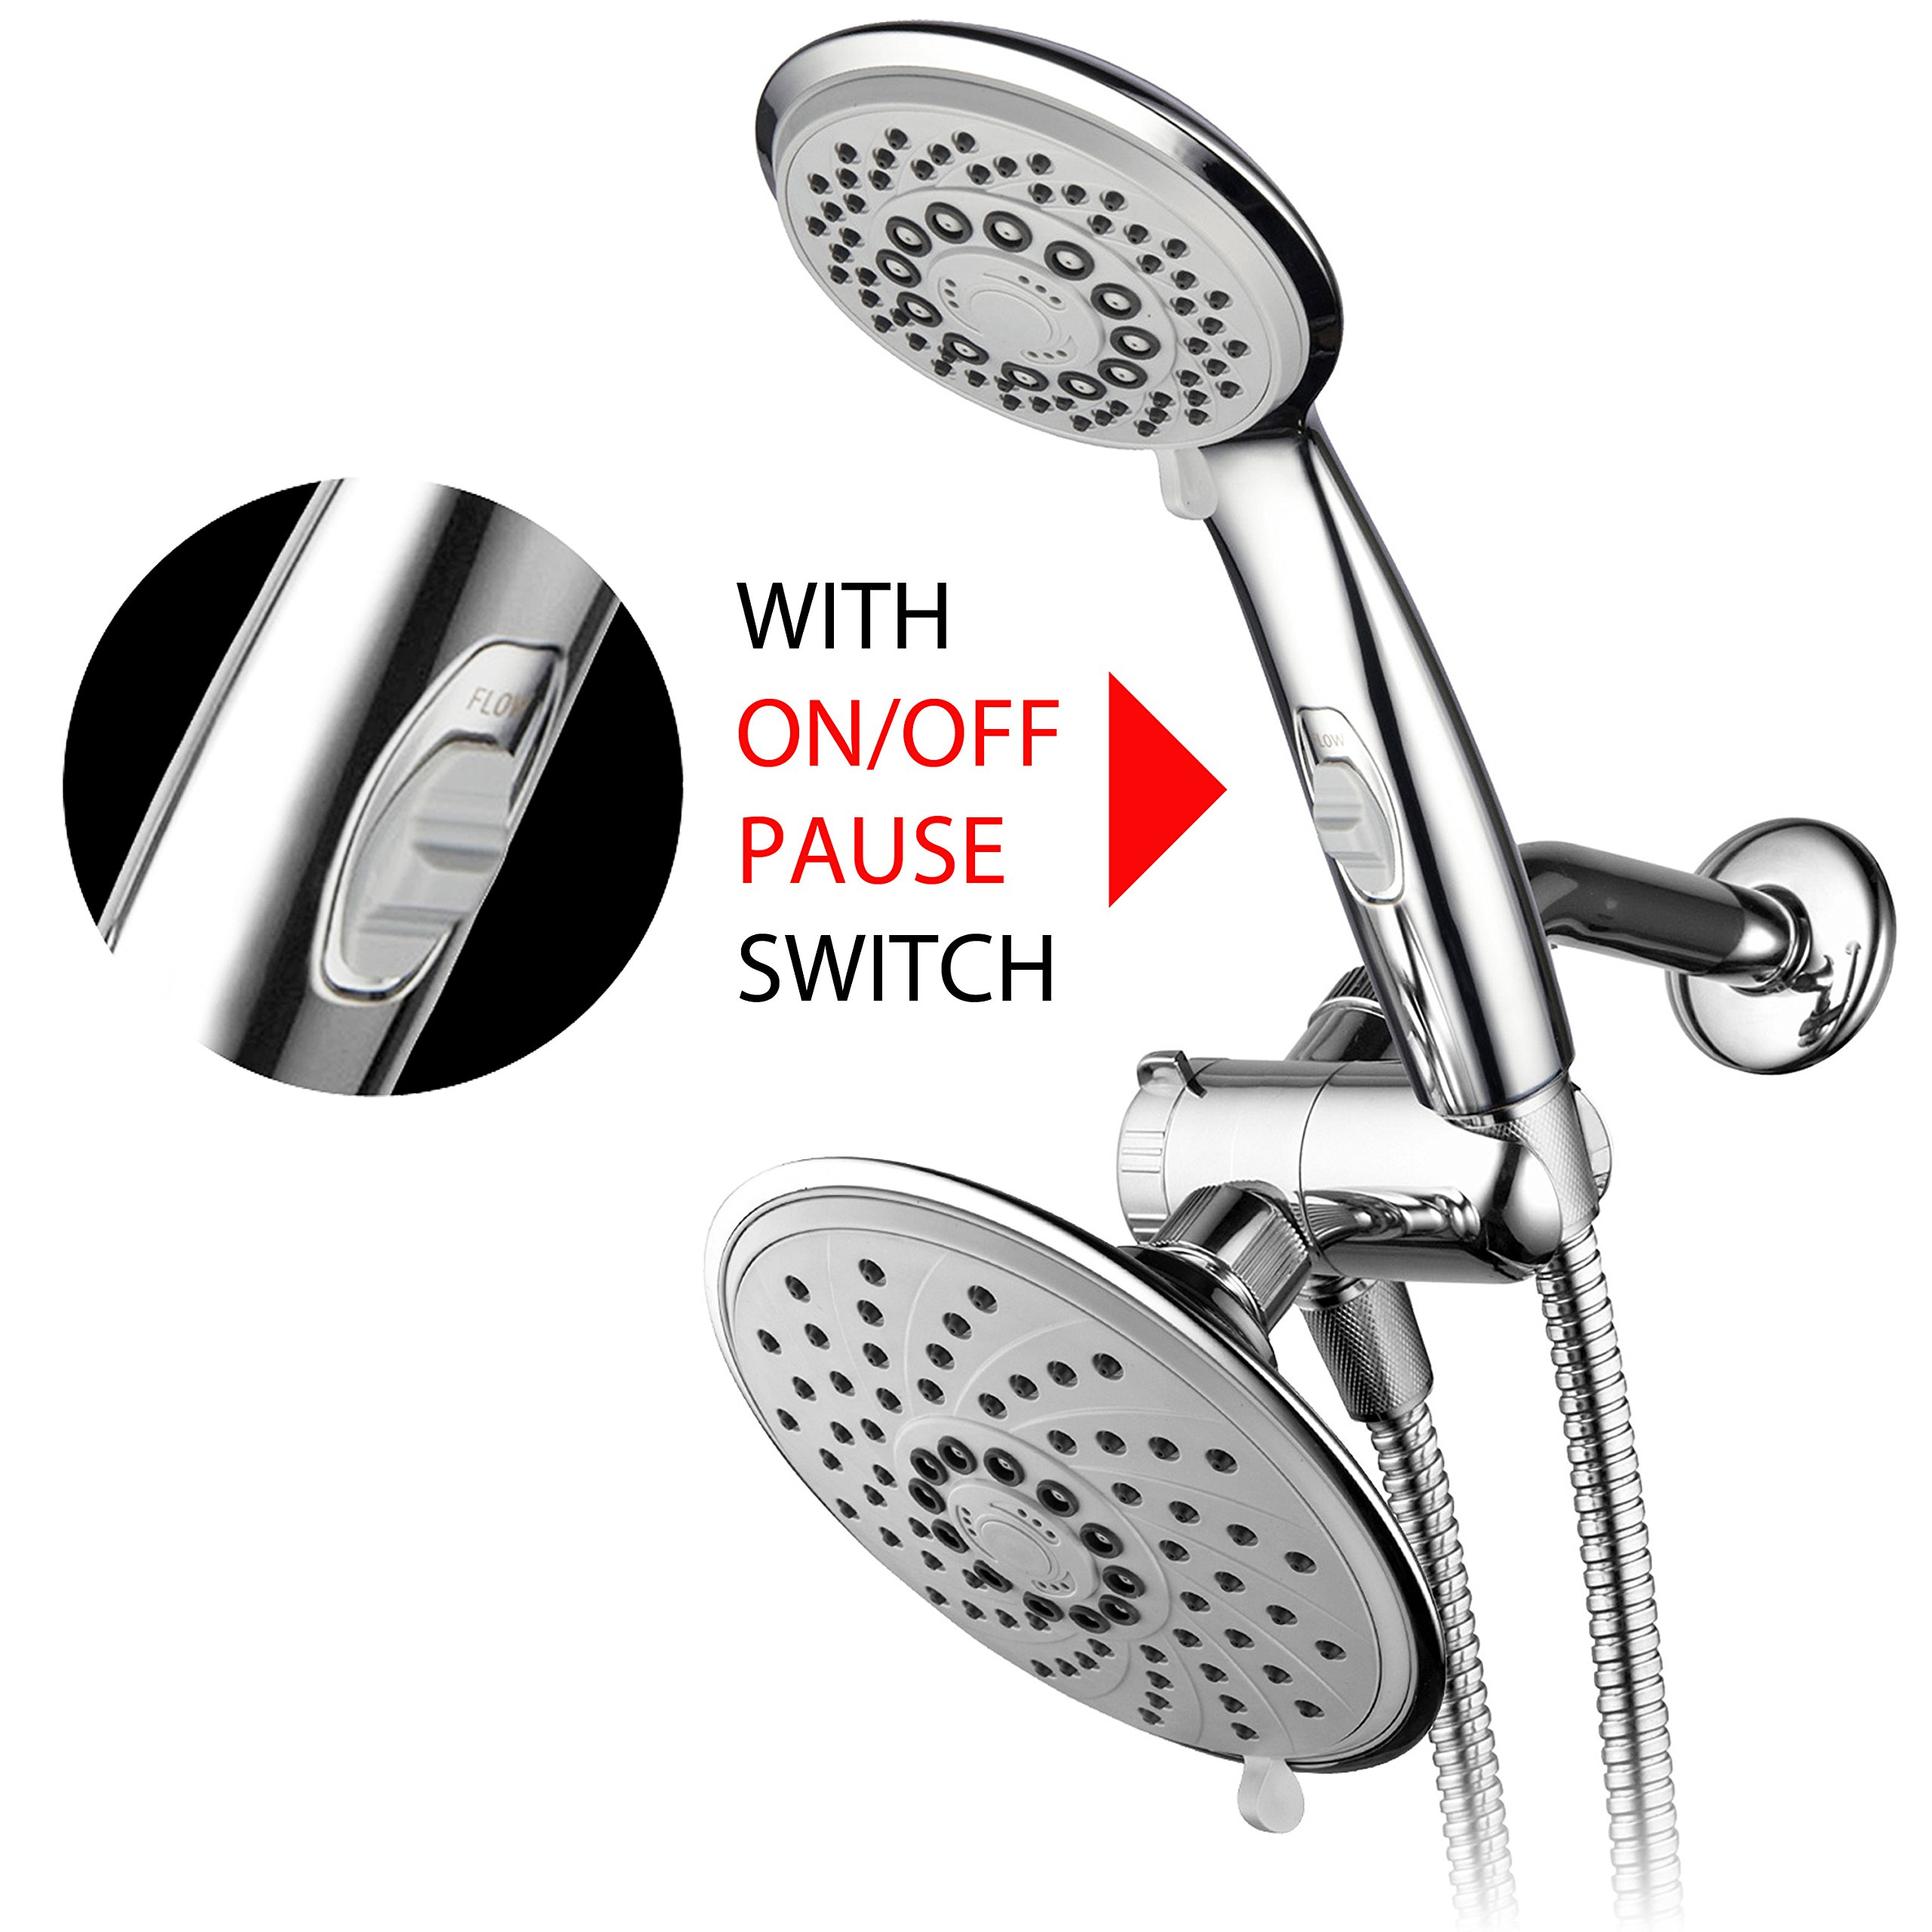 HotelSpa 6''/4'' Ultra-Luxury 3 way Rainfall Shower-Head/Handheld Shower Gray Spiral Combo w/Patented ON/OFF Pause Switch and 5-7 foot Stretchable Stainless Steel Hose by HotelSpa (Image #2)